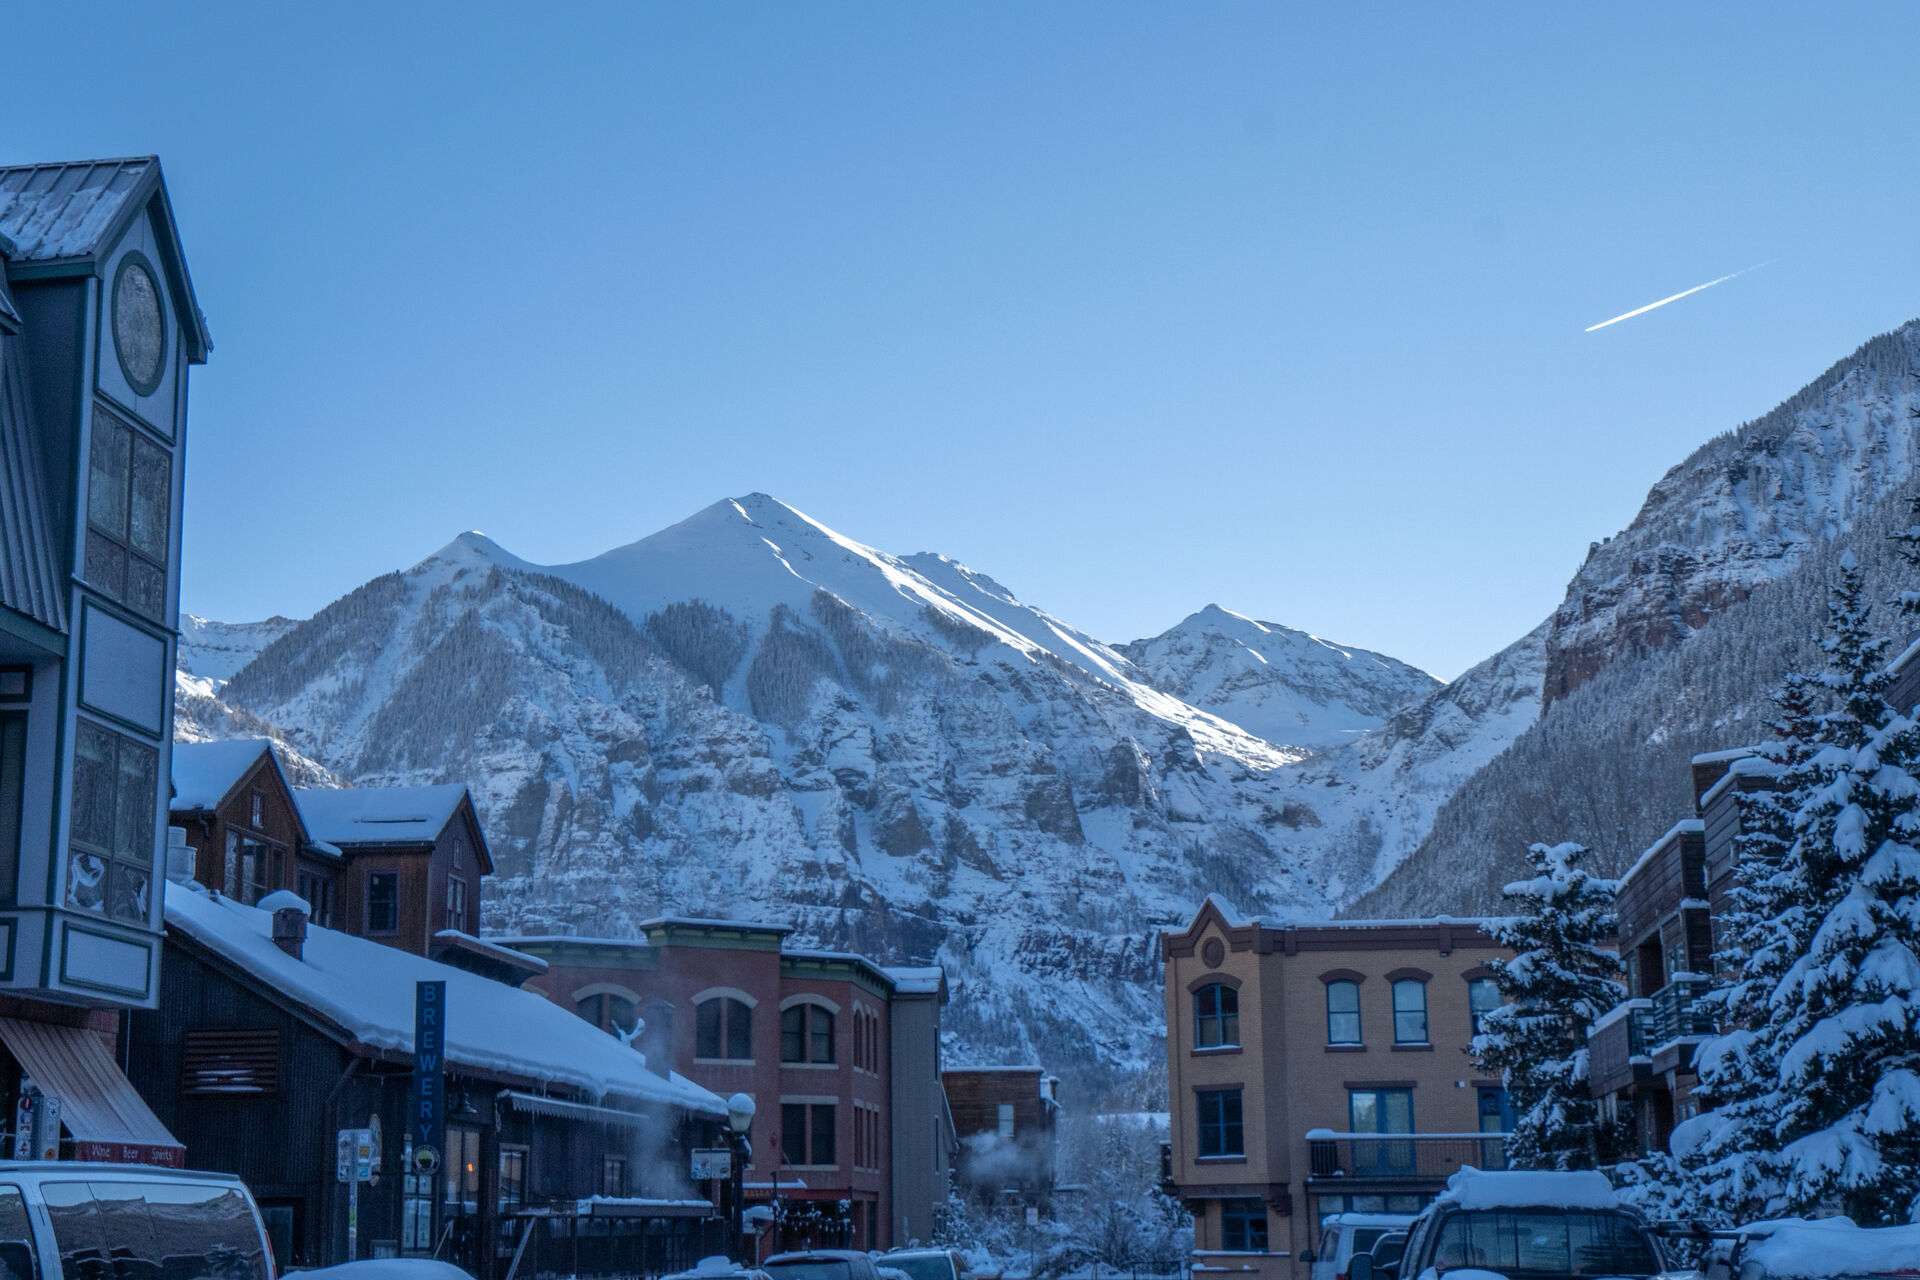 View of the mountains and Telluride